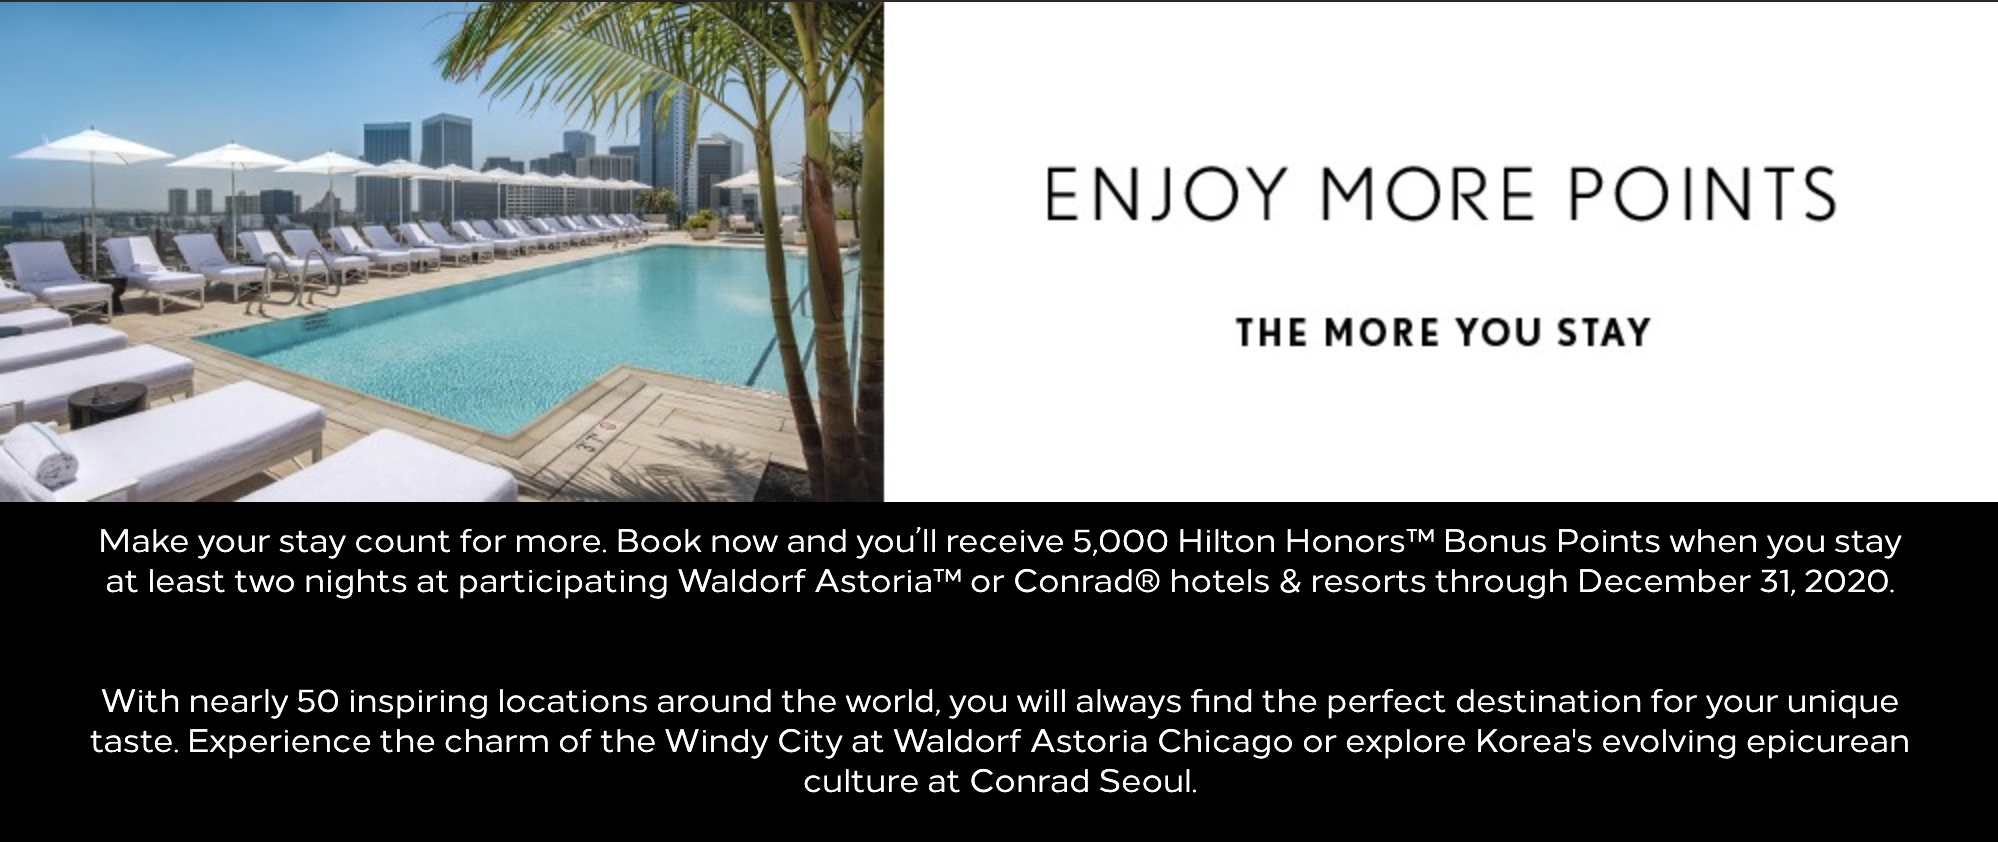 5,000 Hilton Honors Bonus Points for 2-Night Stays in Conrad